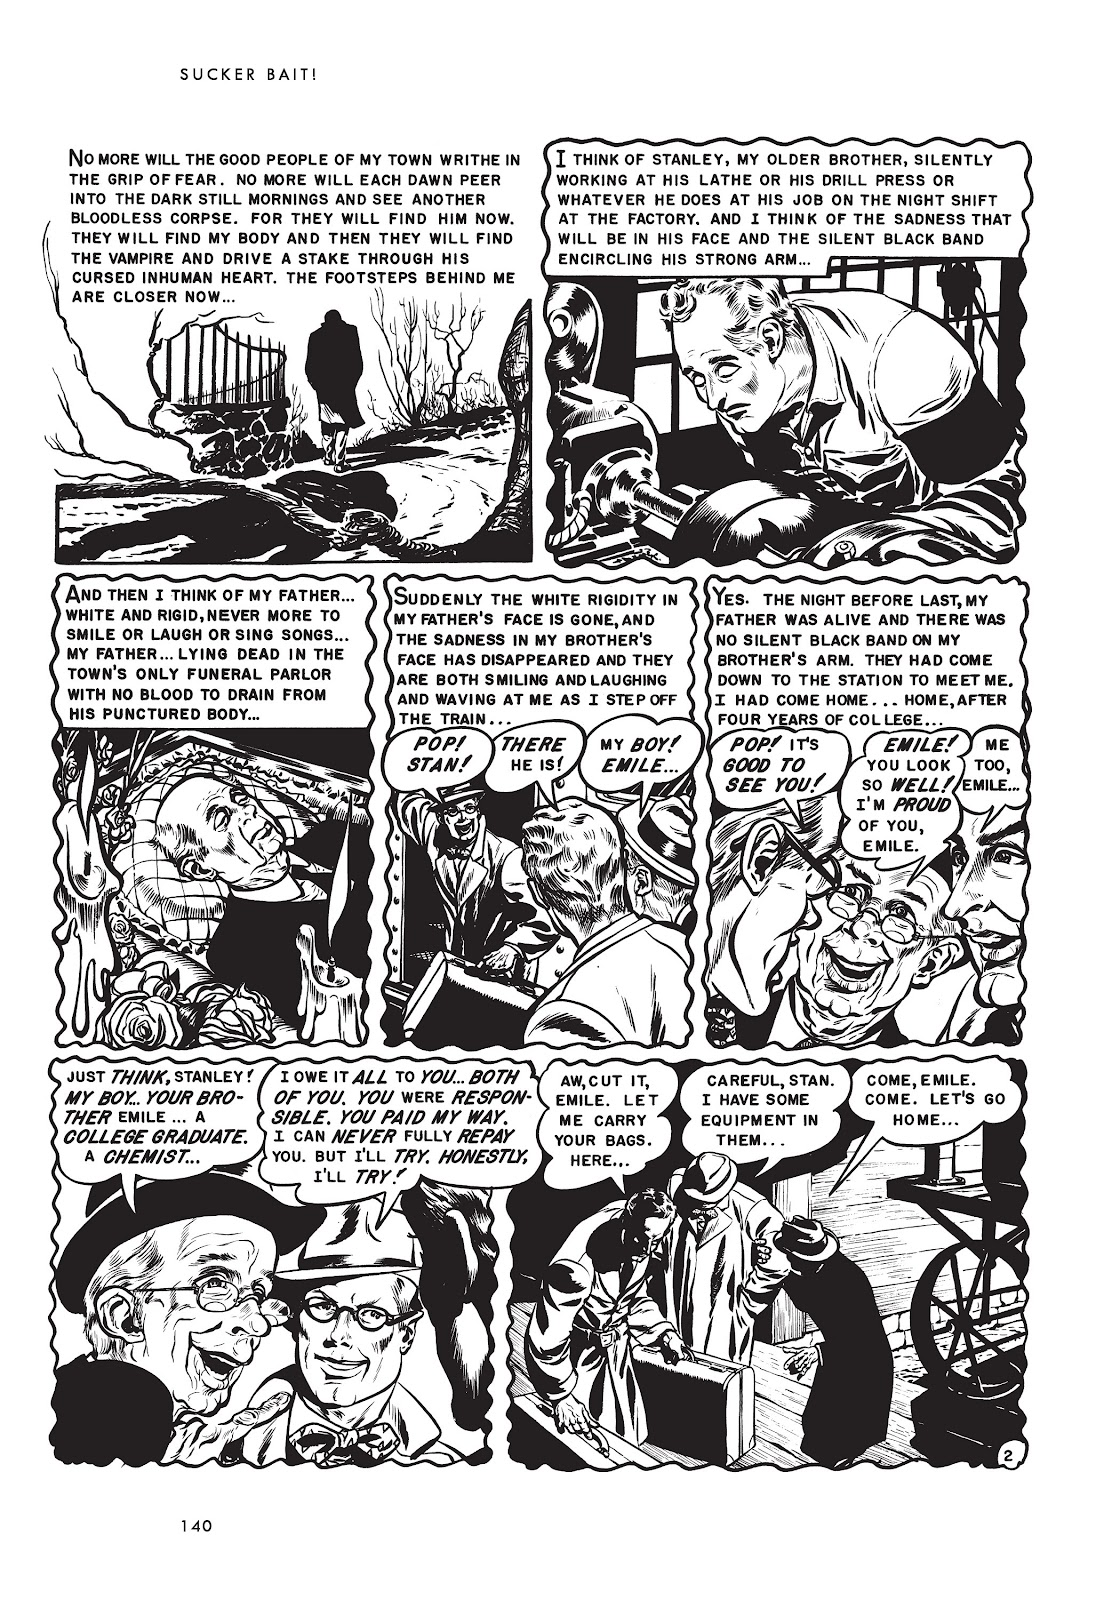 Read online Sucker Bait and Other Stories comic -  Issue # TPB (Part 2) - 55